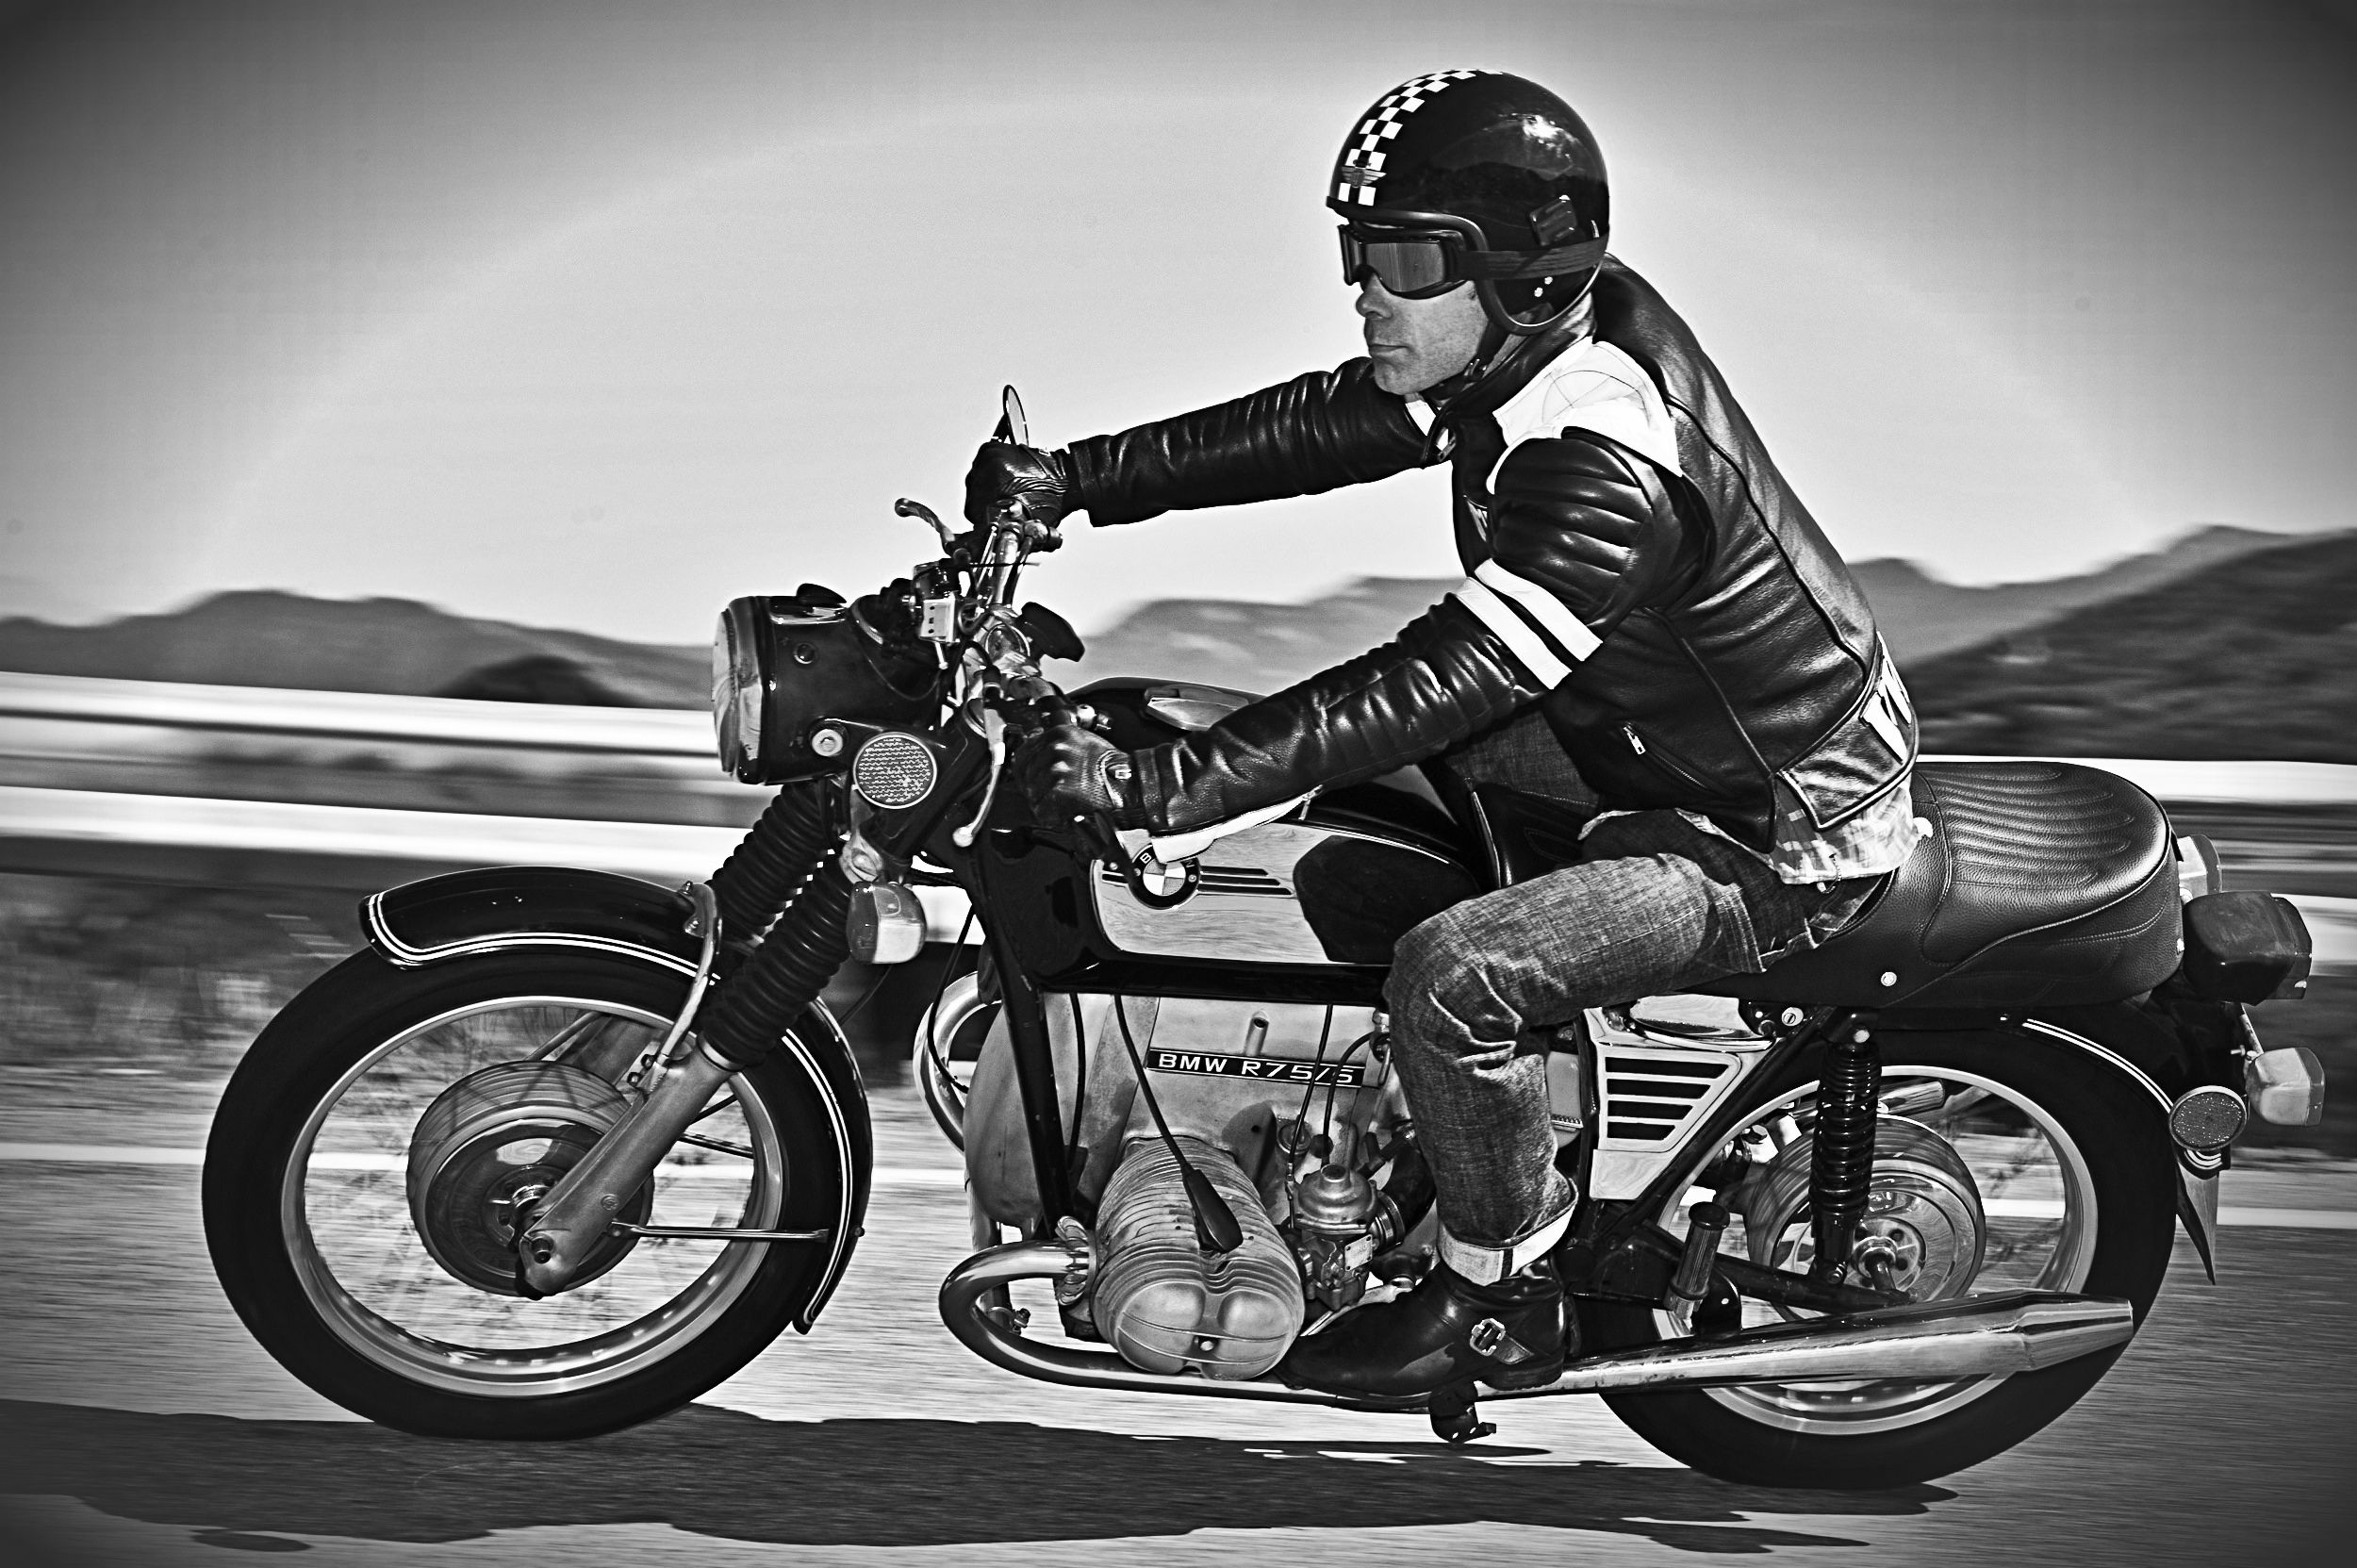 vintage leather jacket girls google search apparel pinterest cafe racer motorcycle cafe. Black Bedroom Furniture Sets. Home Design Ideas